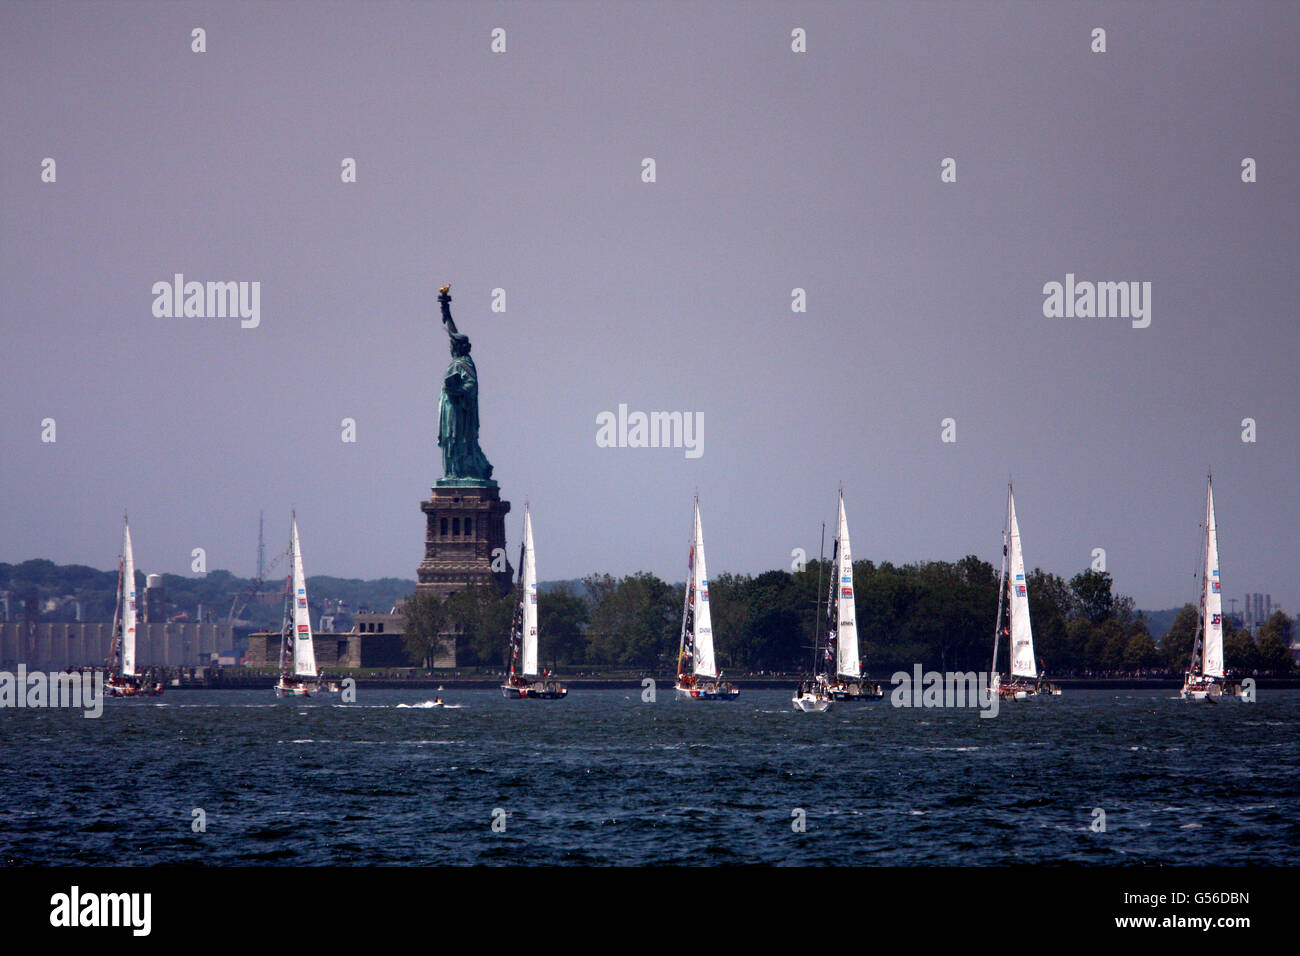 New York, USA. 20th June, 2016. Clipper Round the World ships sail past the Statue of Liberty as they leave the - Stock Image